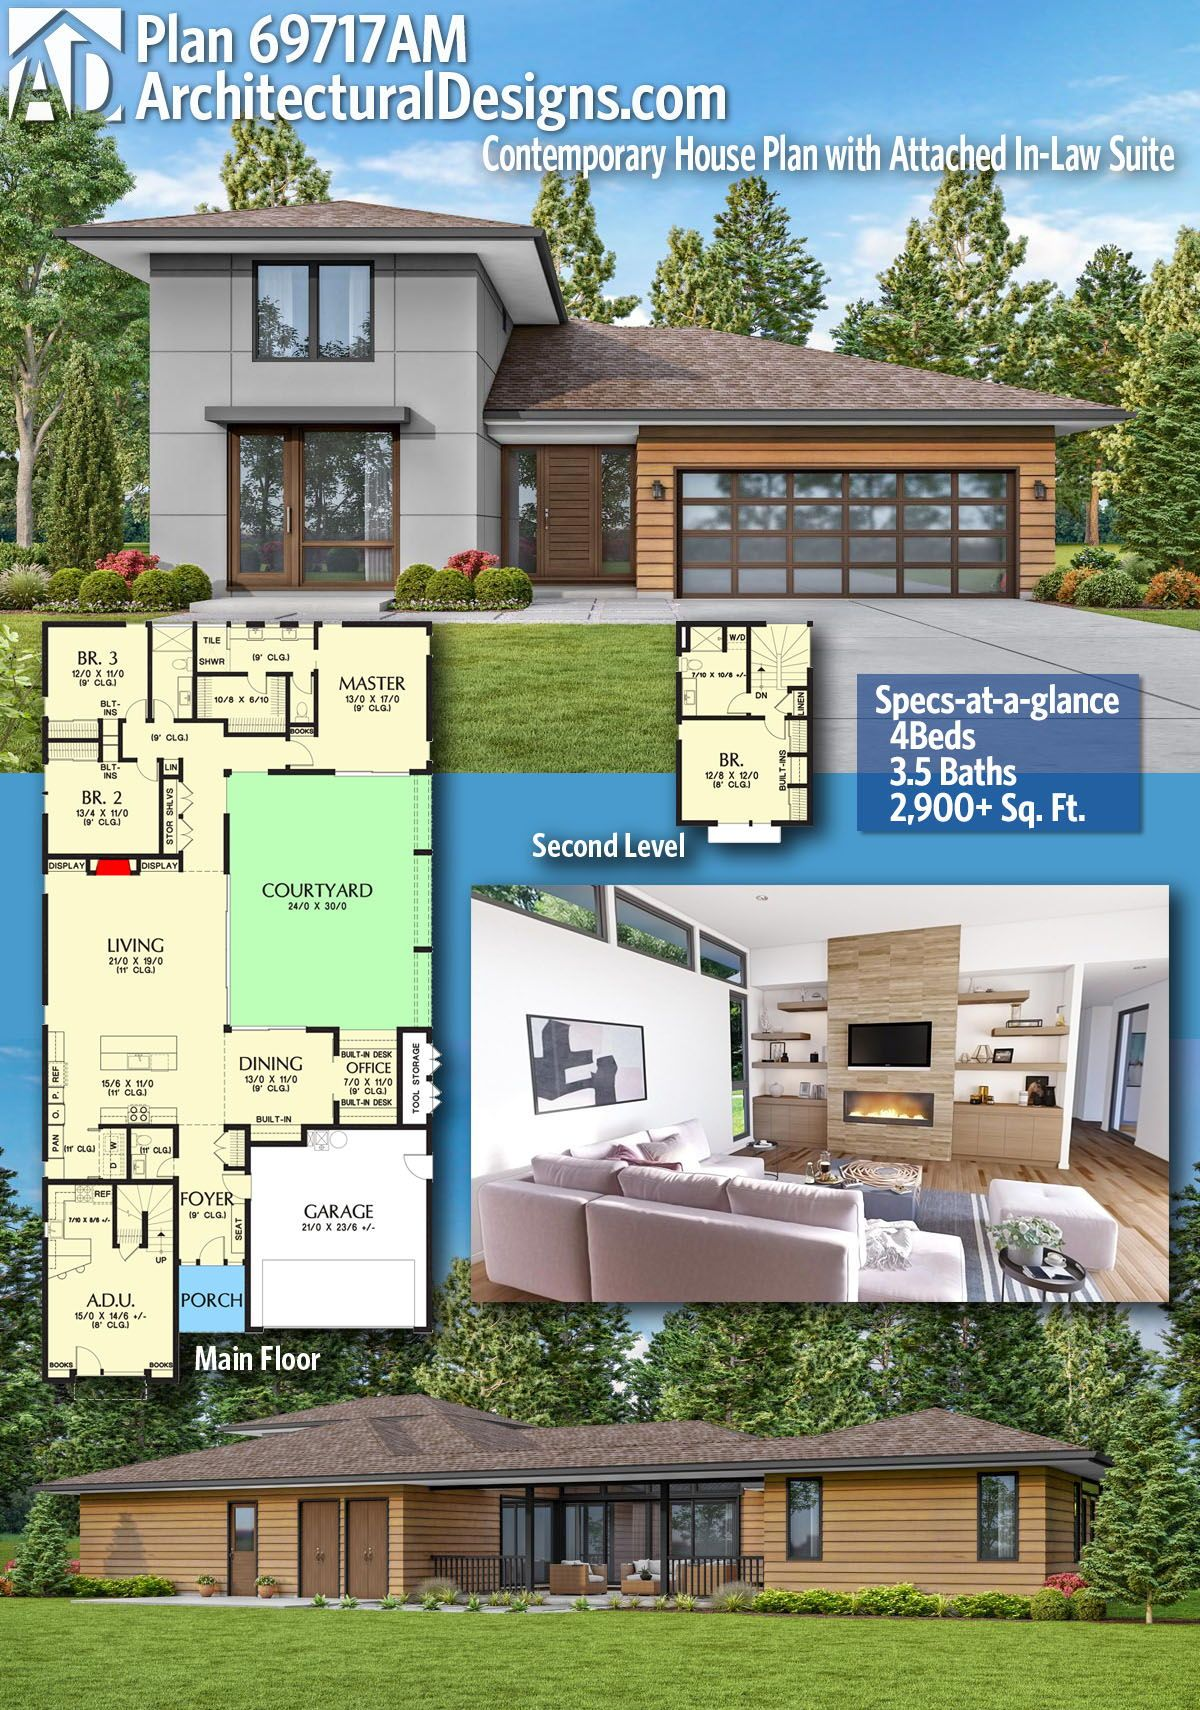 Plan 69717am Contemporary House Plan With Attached In Law Suite Modern House Plans Contemporary House Plans House Plans